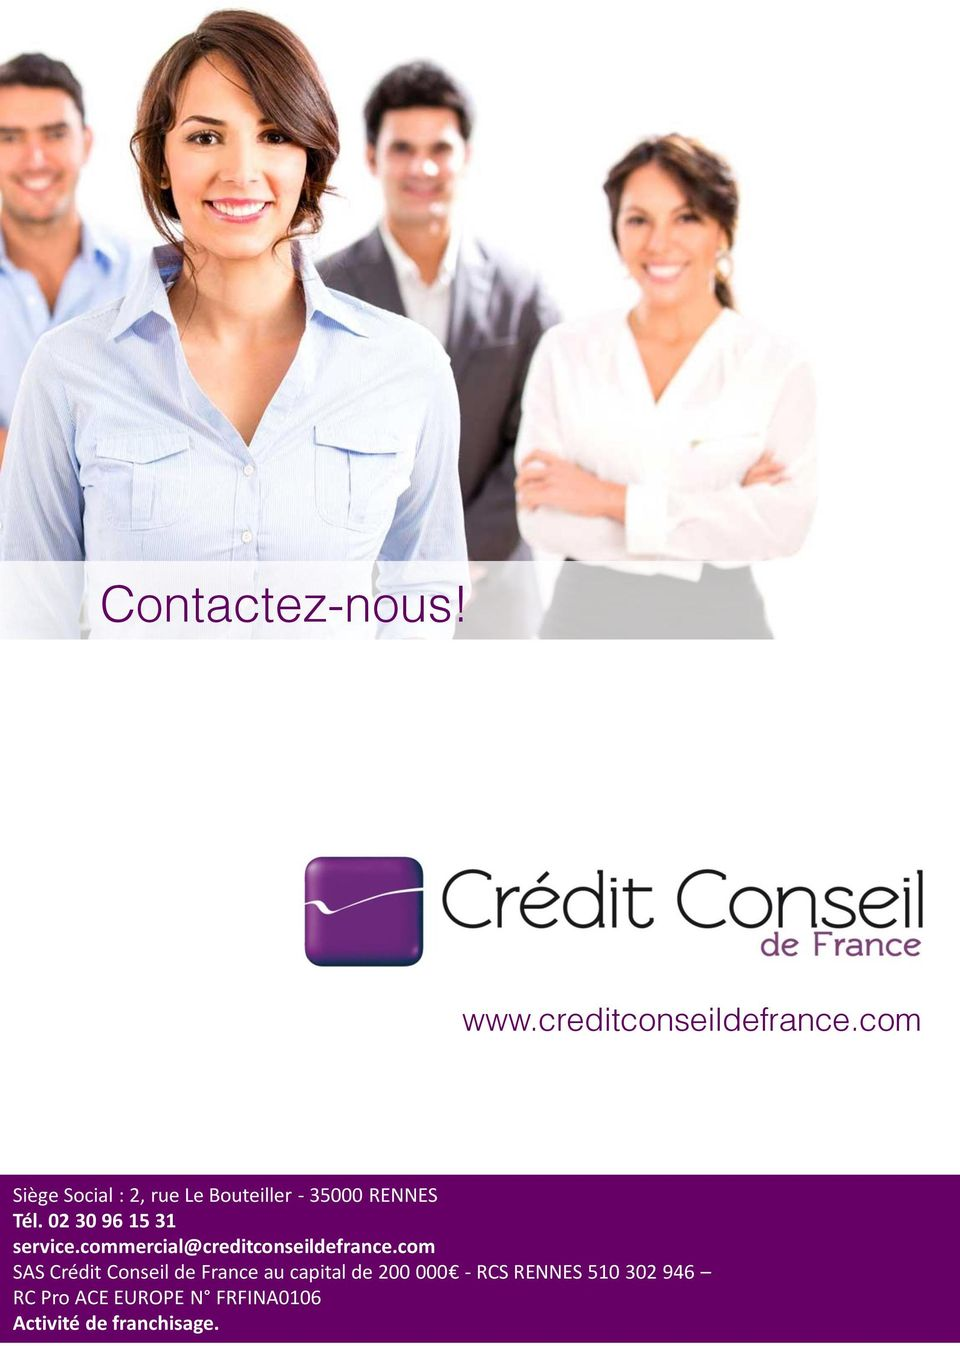 02 30 96 15 31 service.commercial@creditconseildefrance.